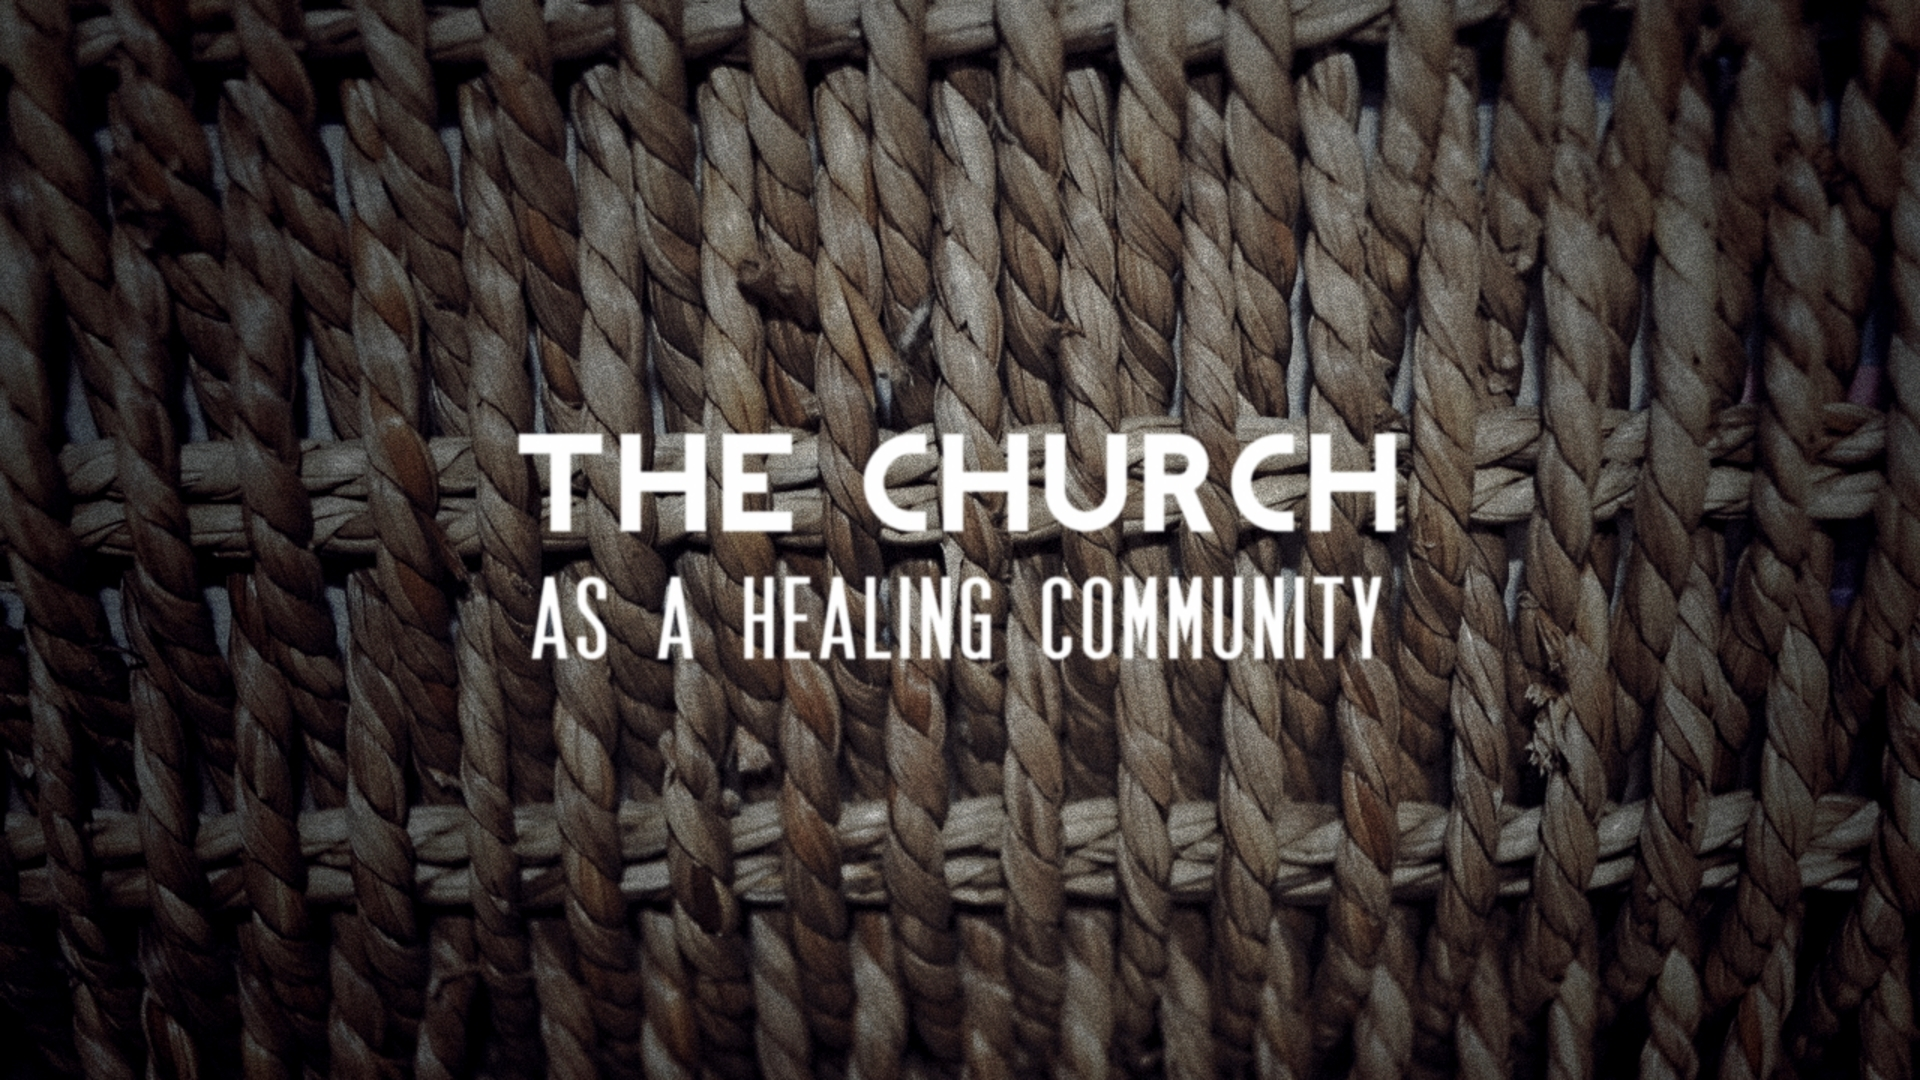 The Church as a Healing Community